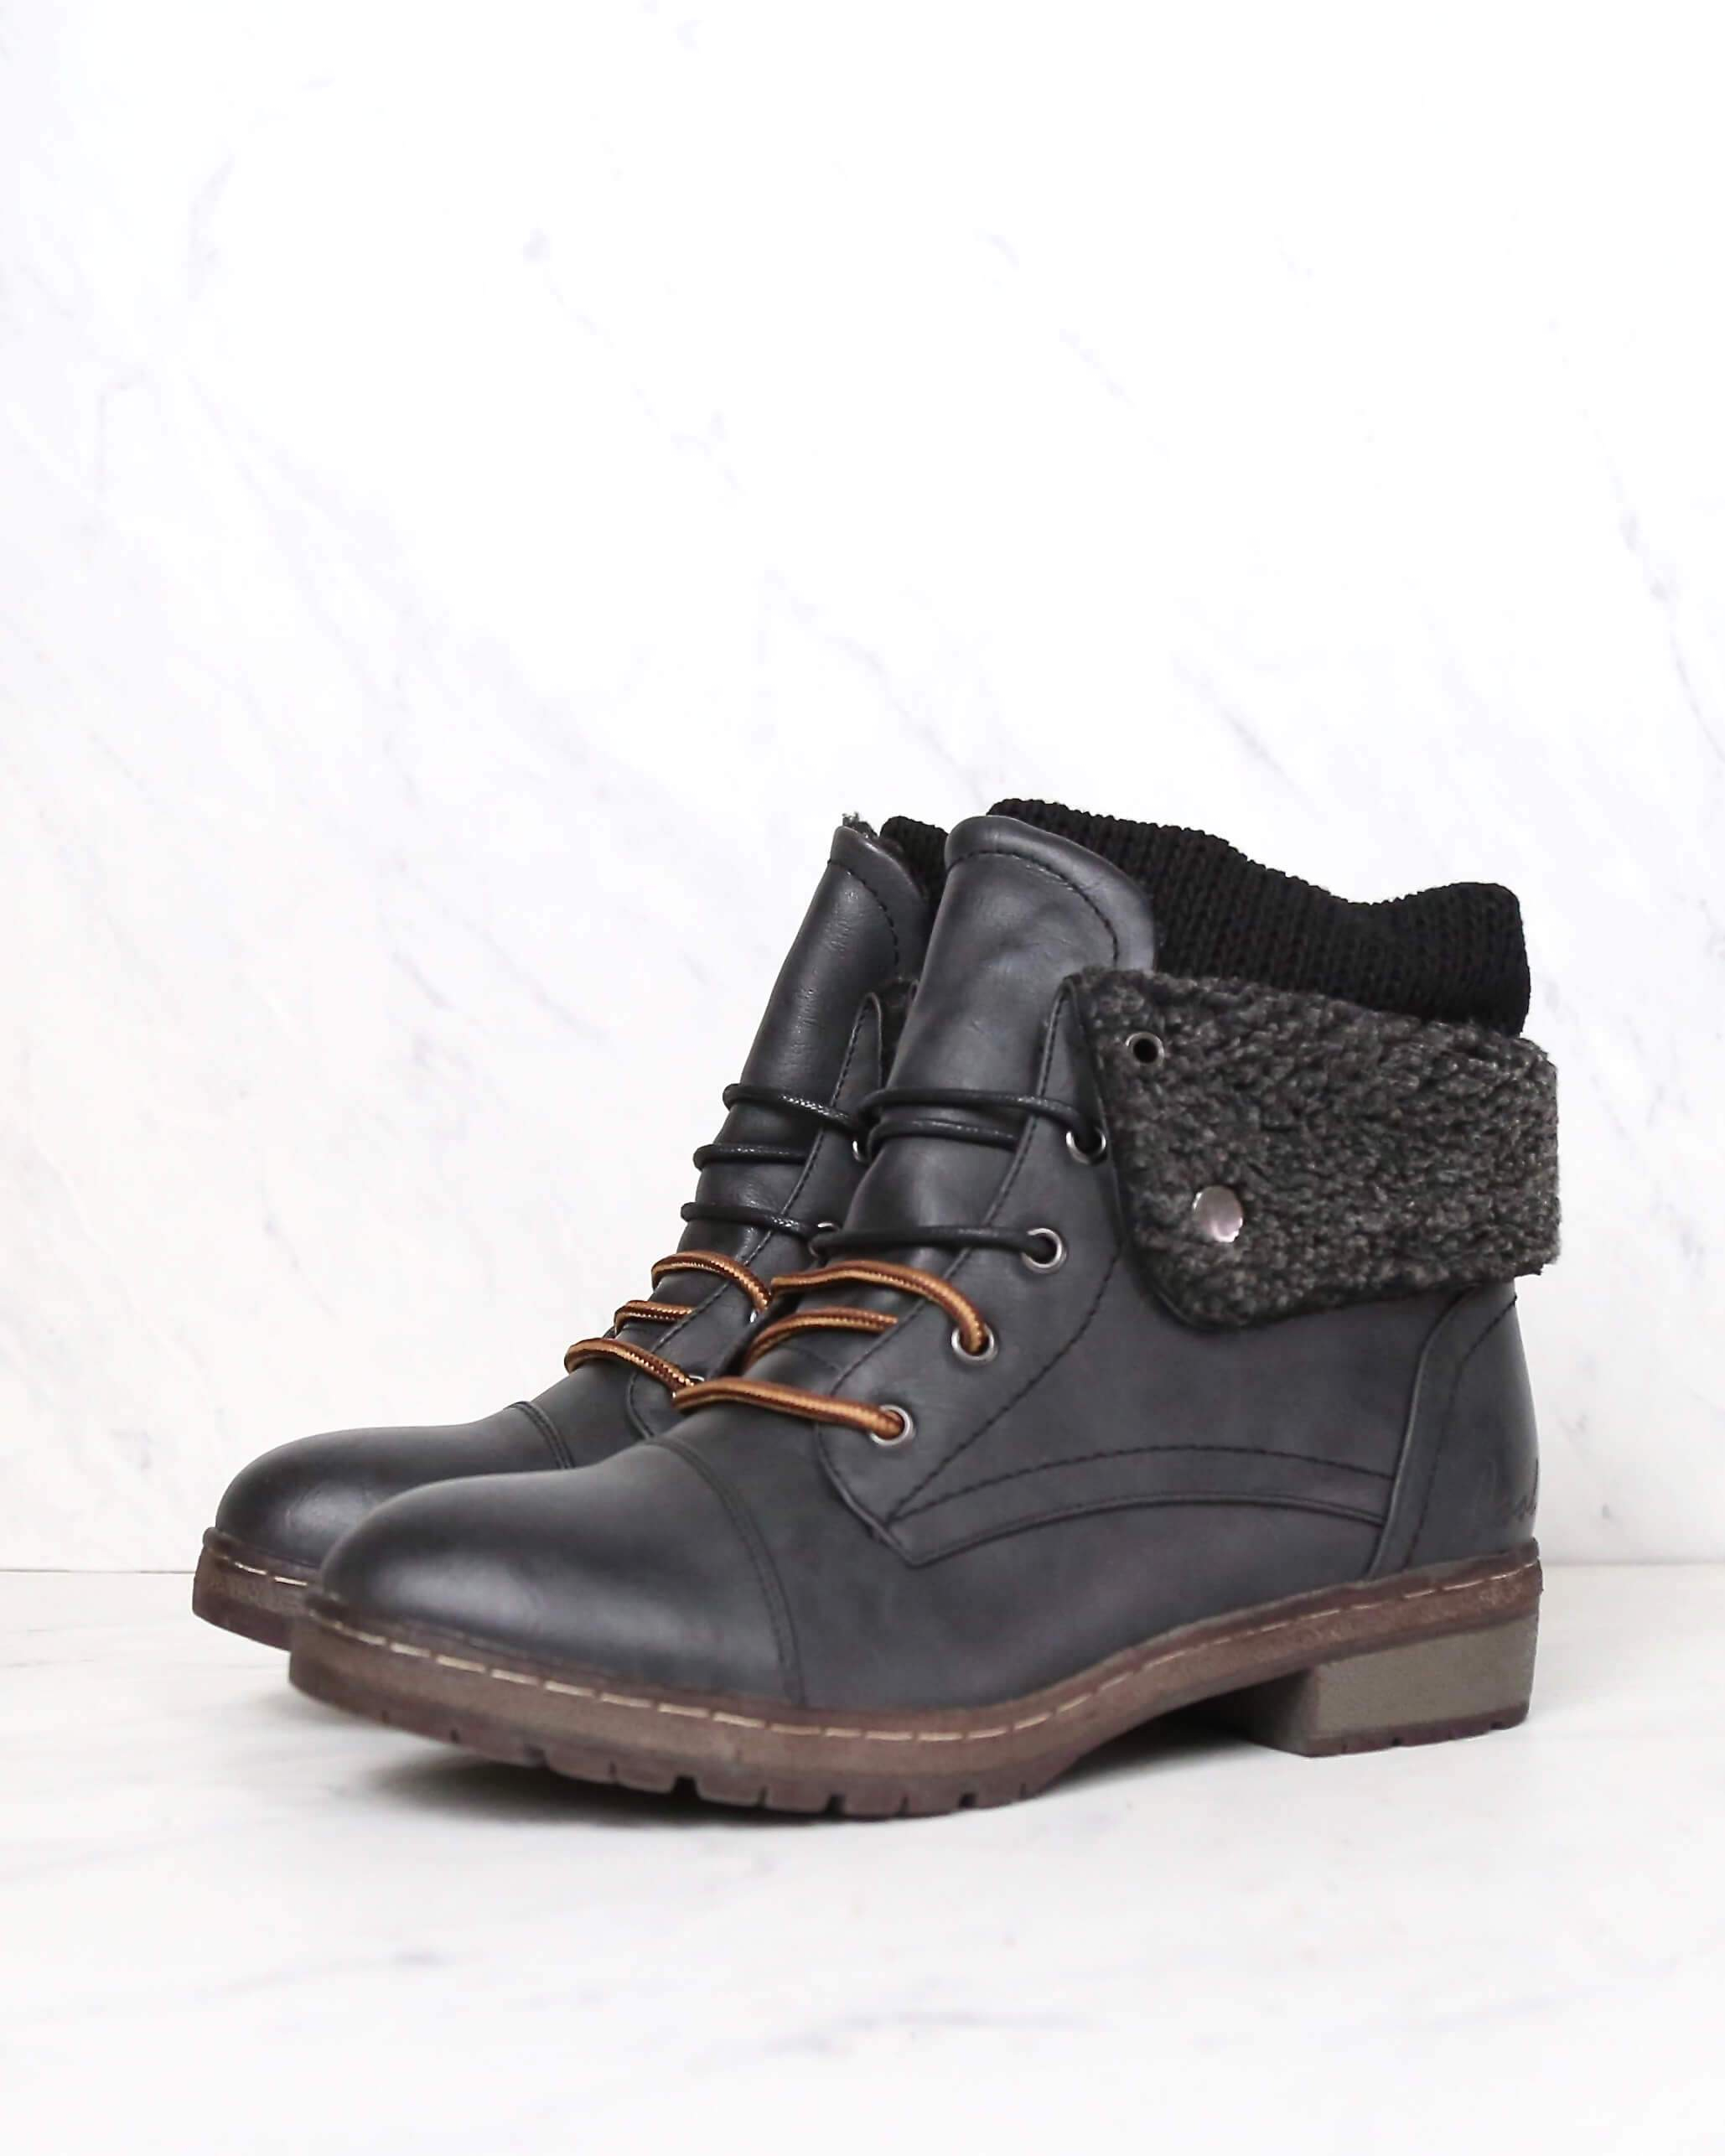 2eb41f9f coolway - bring leather knit sweater cuff ankle boots - more colors